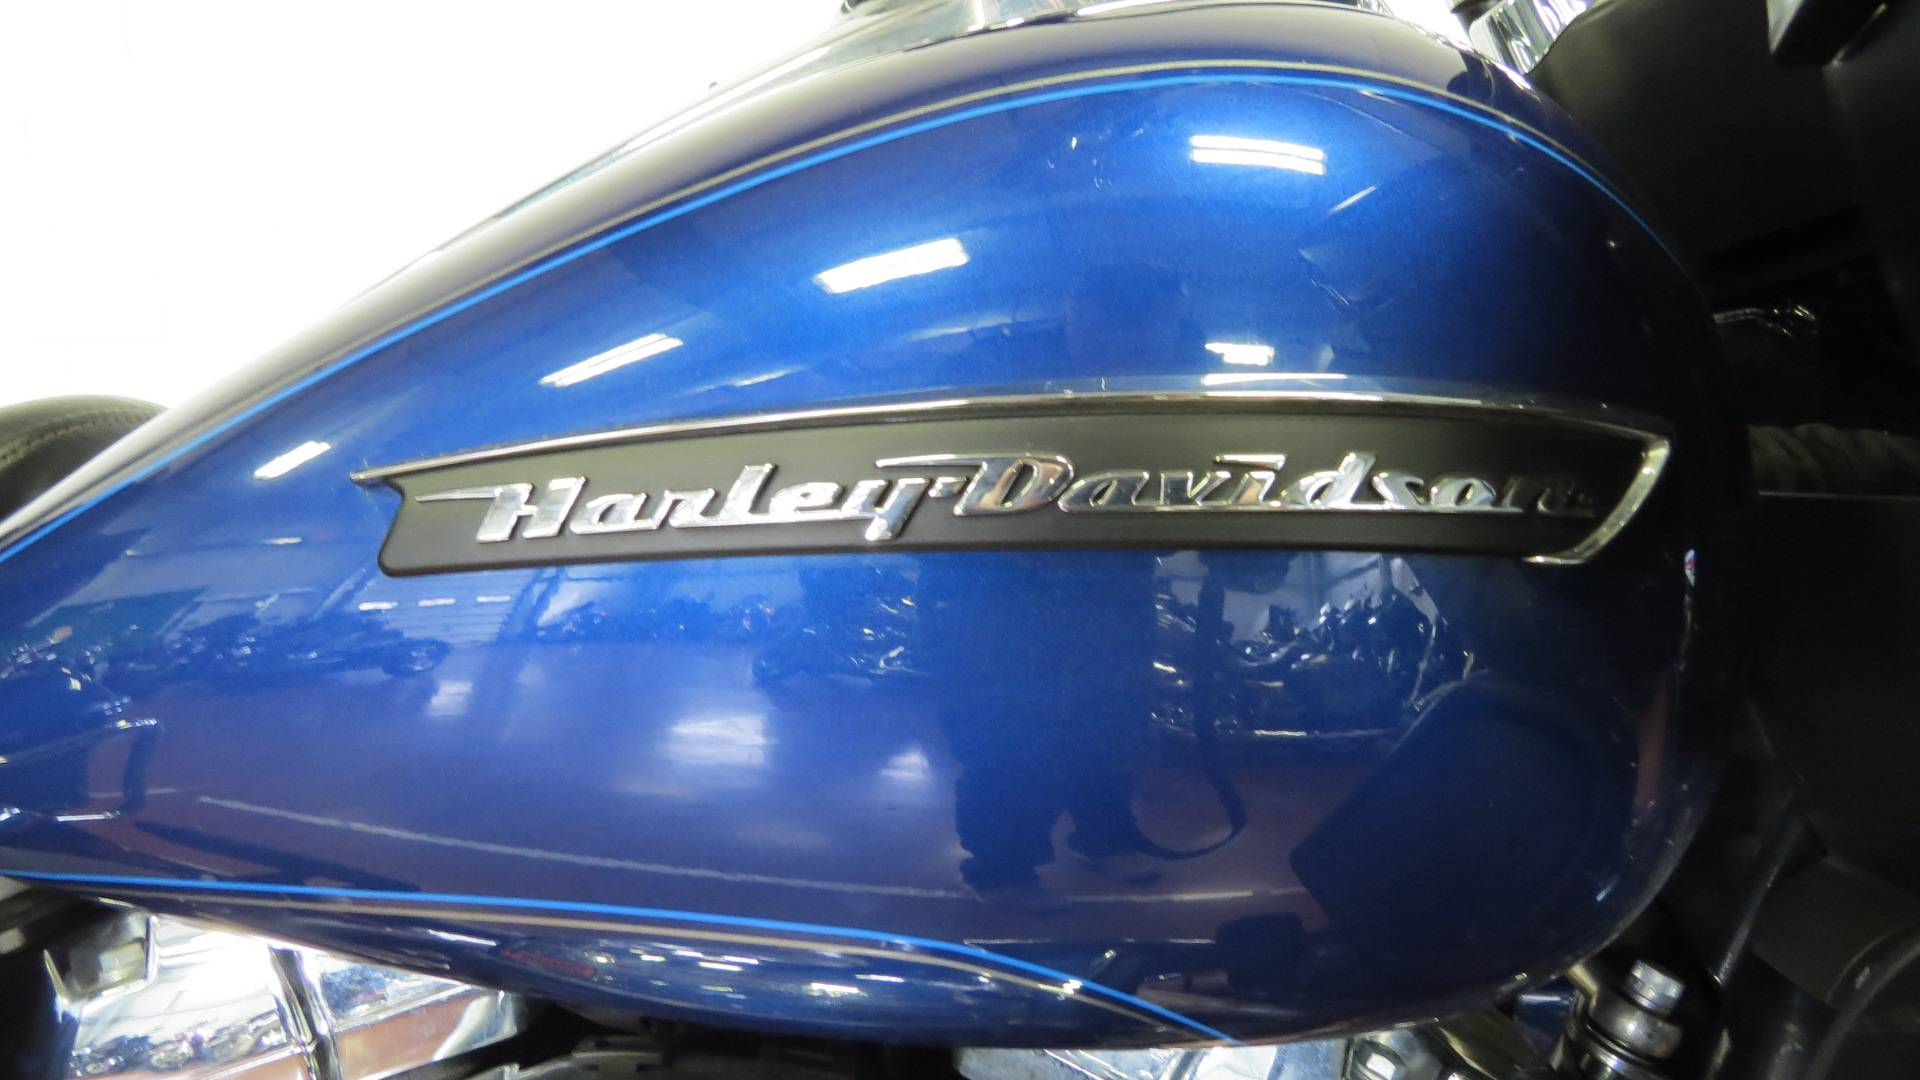 2016 Harley-Davidson Road Glide® Ultra in Sunbury, Ohio - Photo 2